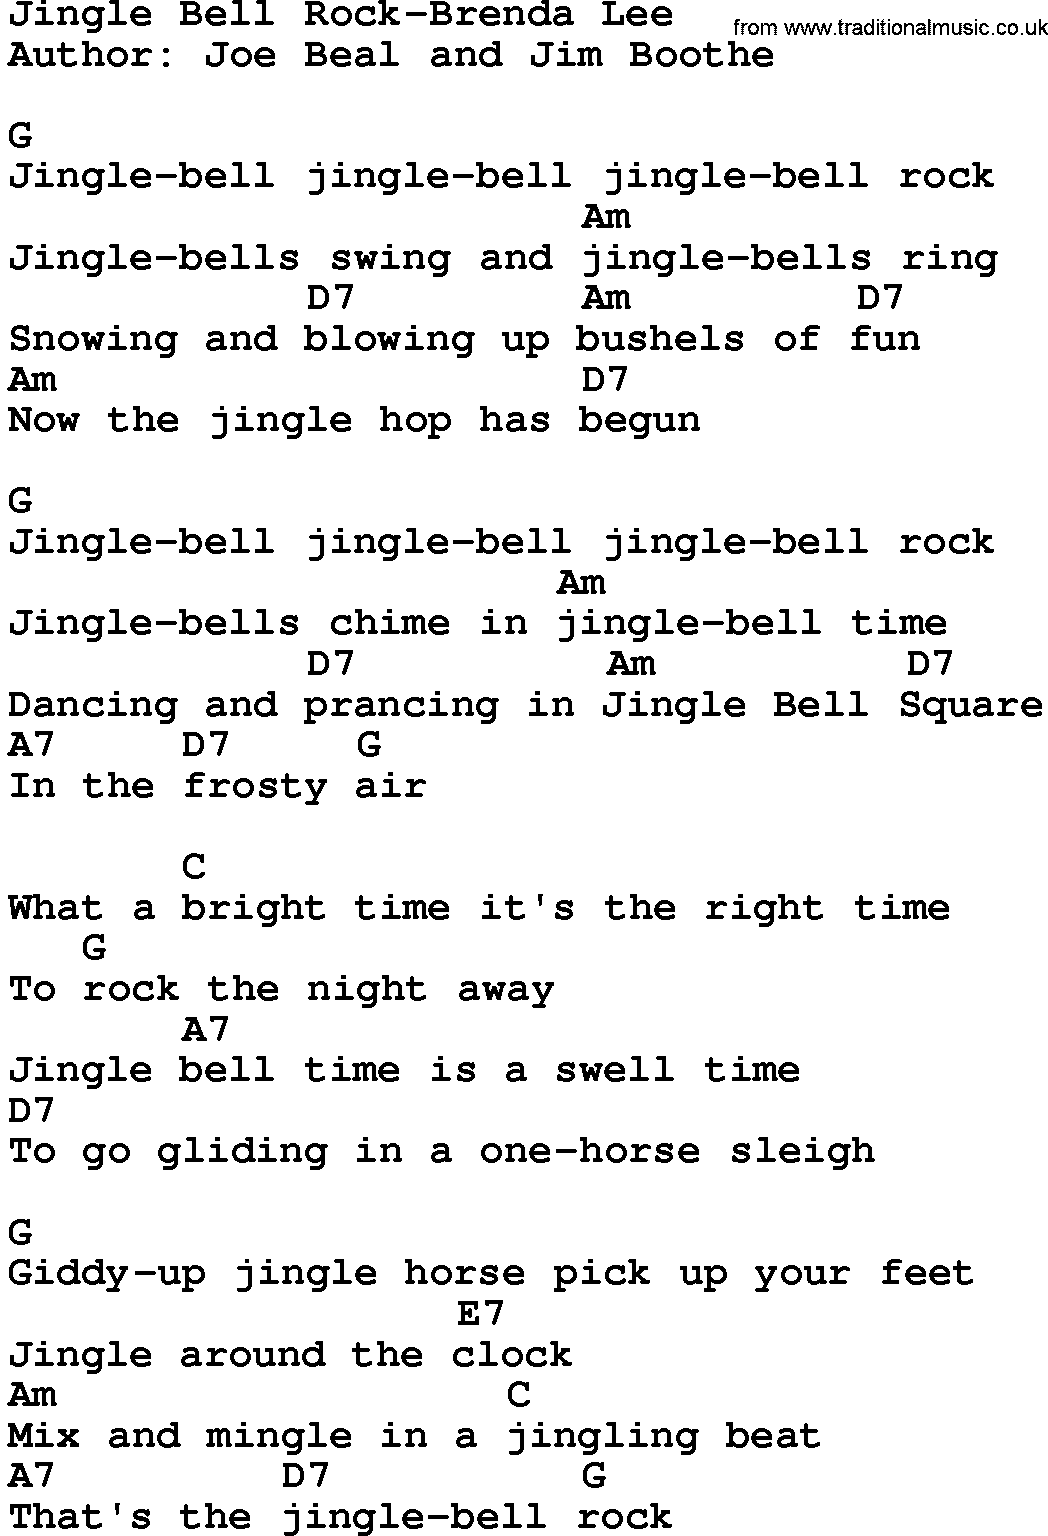 photograph regarding Jingle Bells Lyrics Printable identified as Region New music:Jingle Bell Rock-Brenda Lee Lyrics and Chords